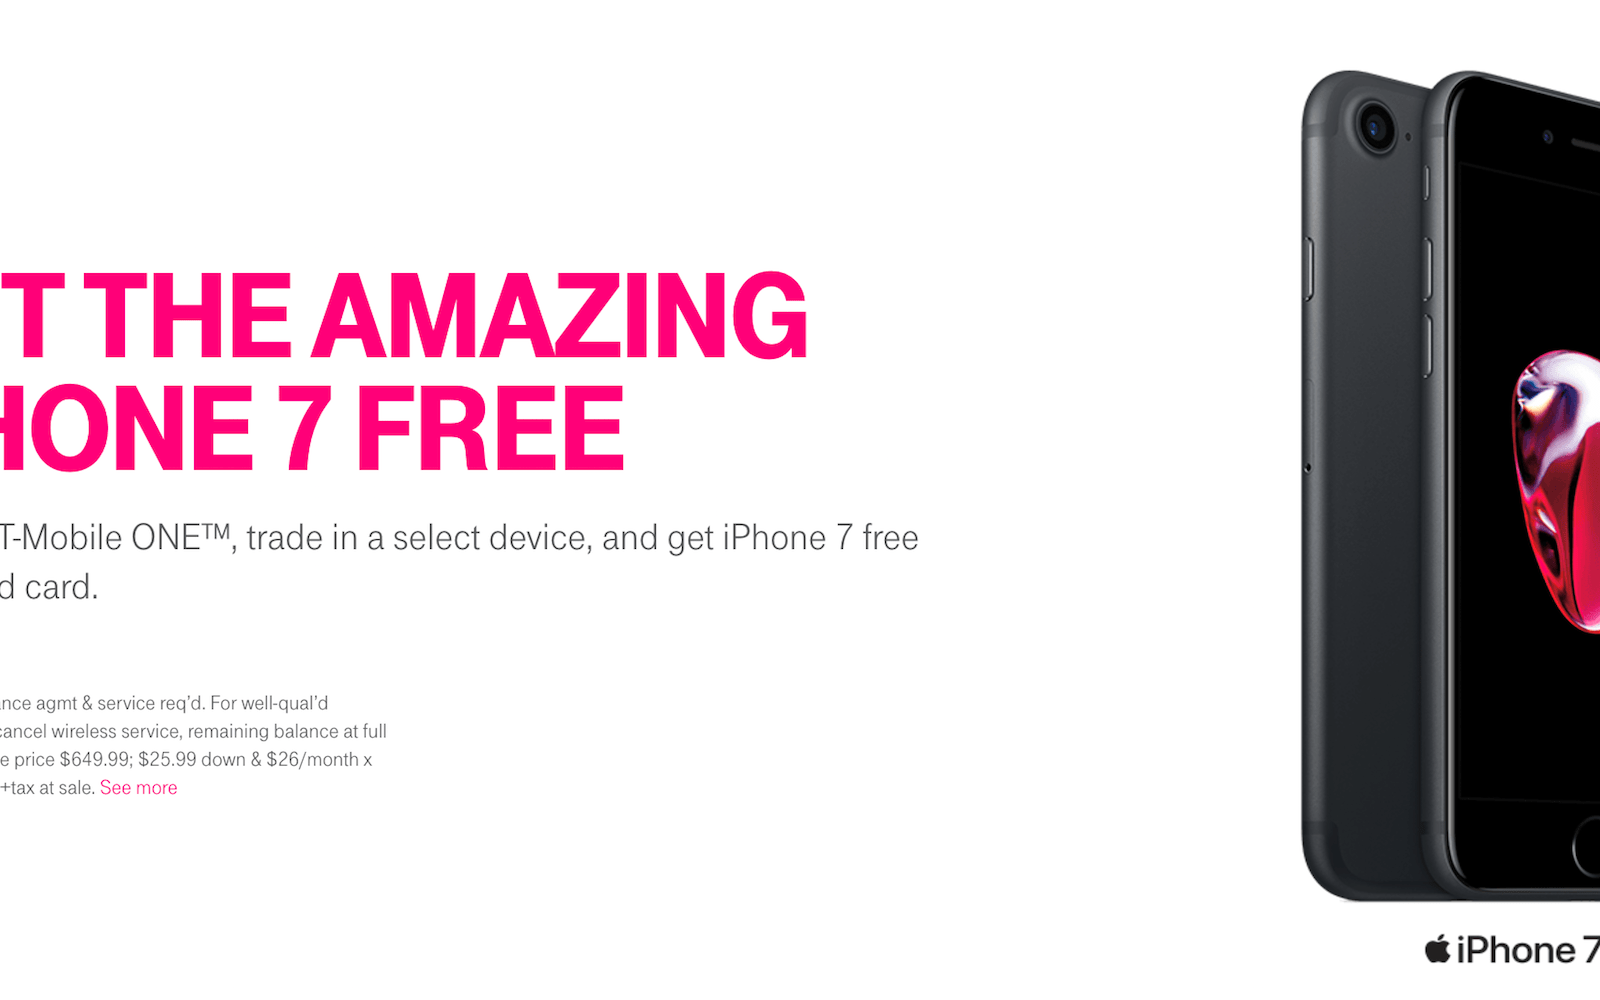 T-Mobile announces free iPhone 7 promo for switchers + free MLB.TV & At Bat Premium for all customers